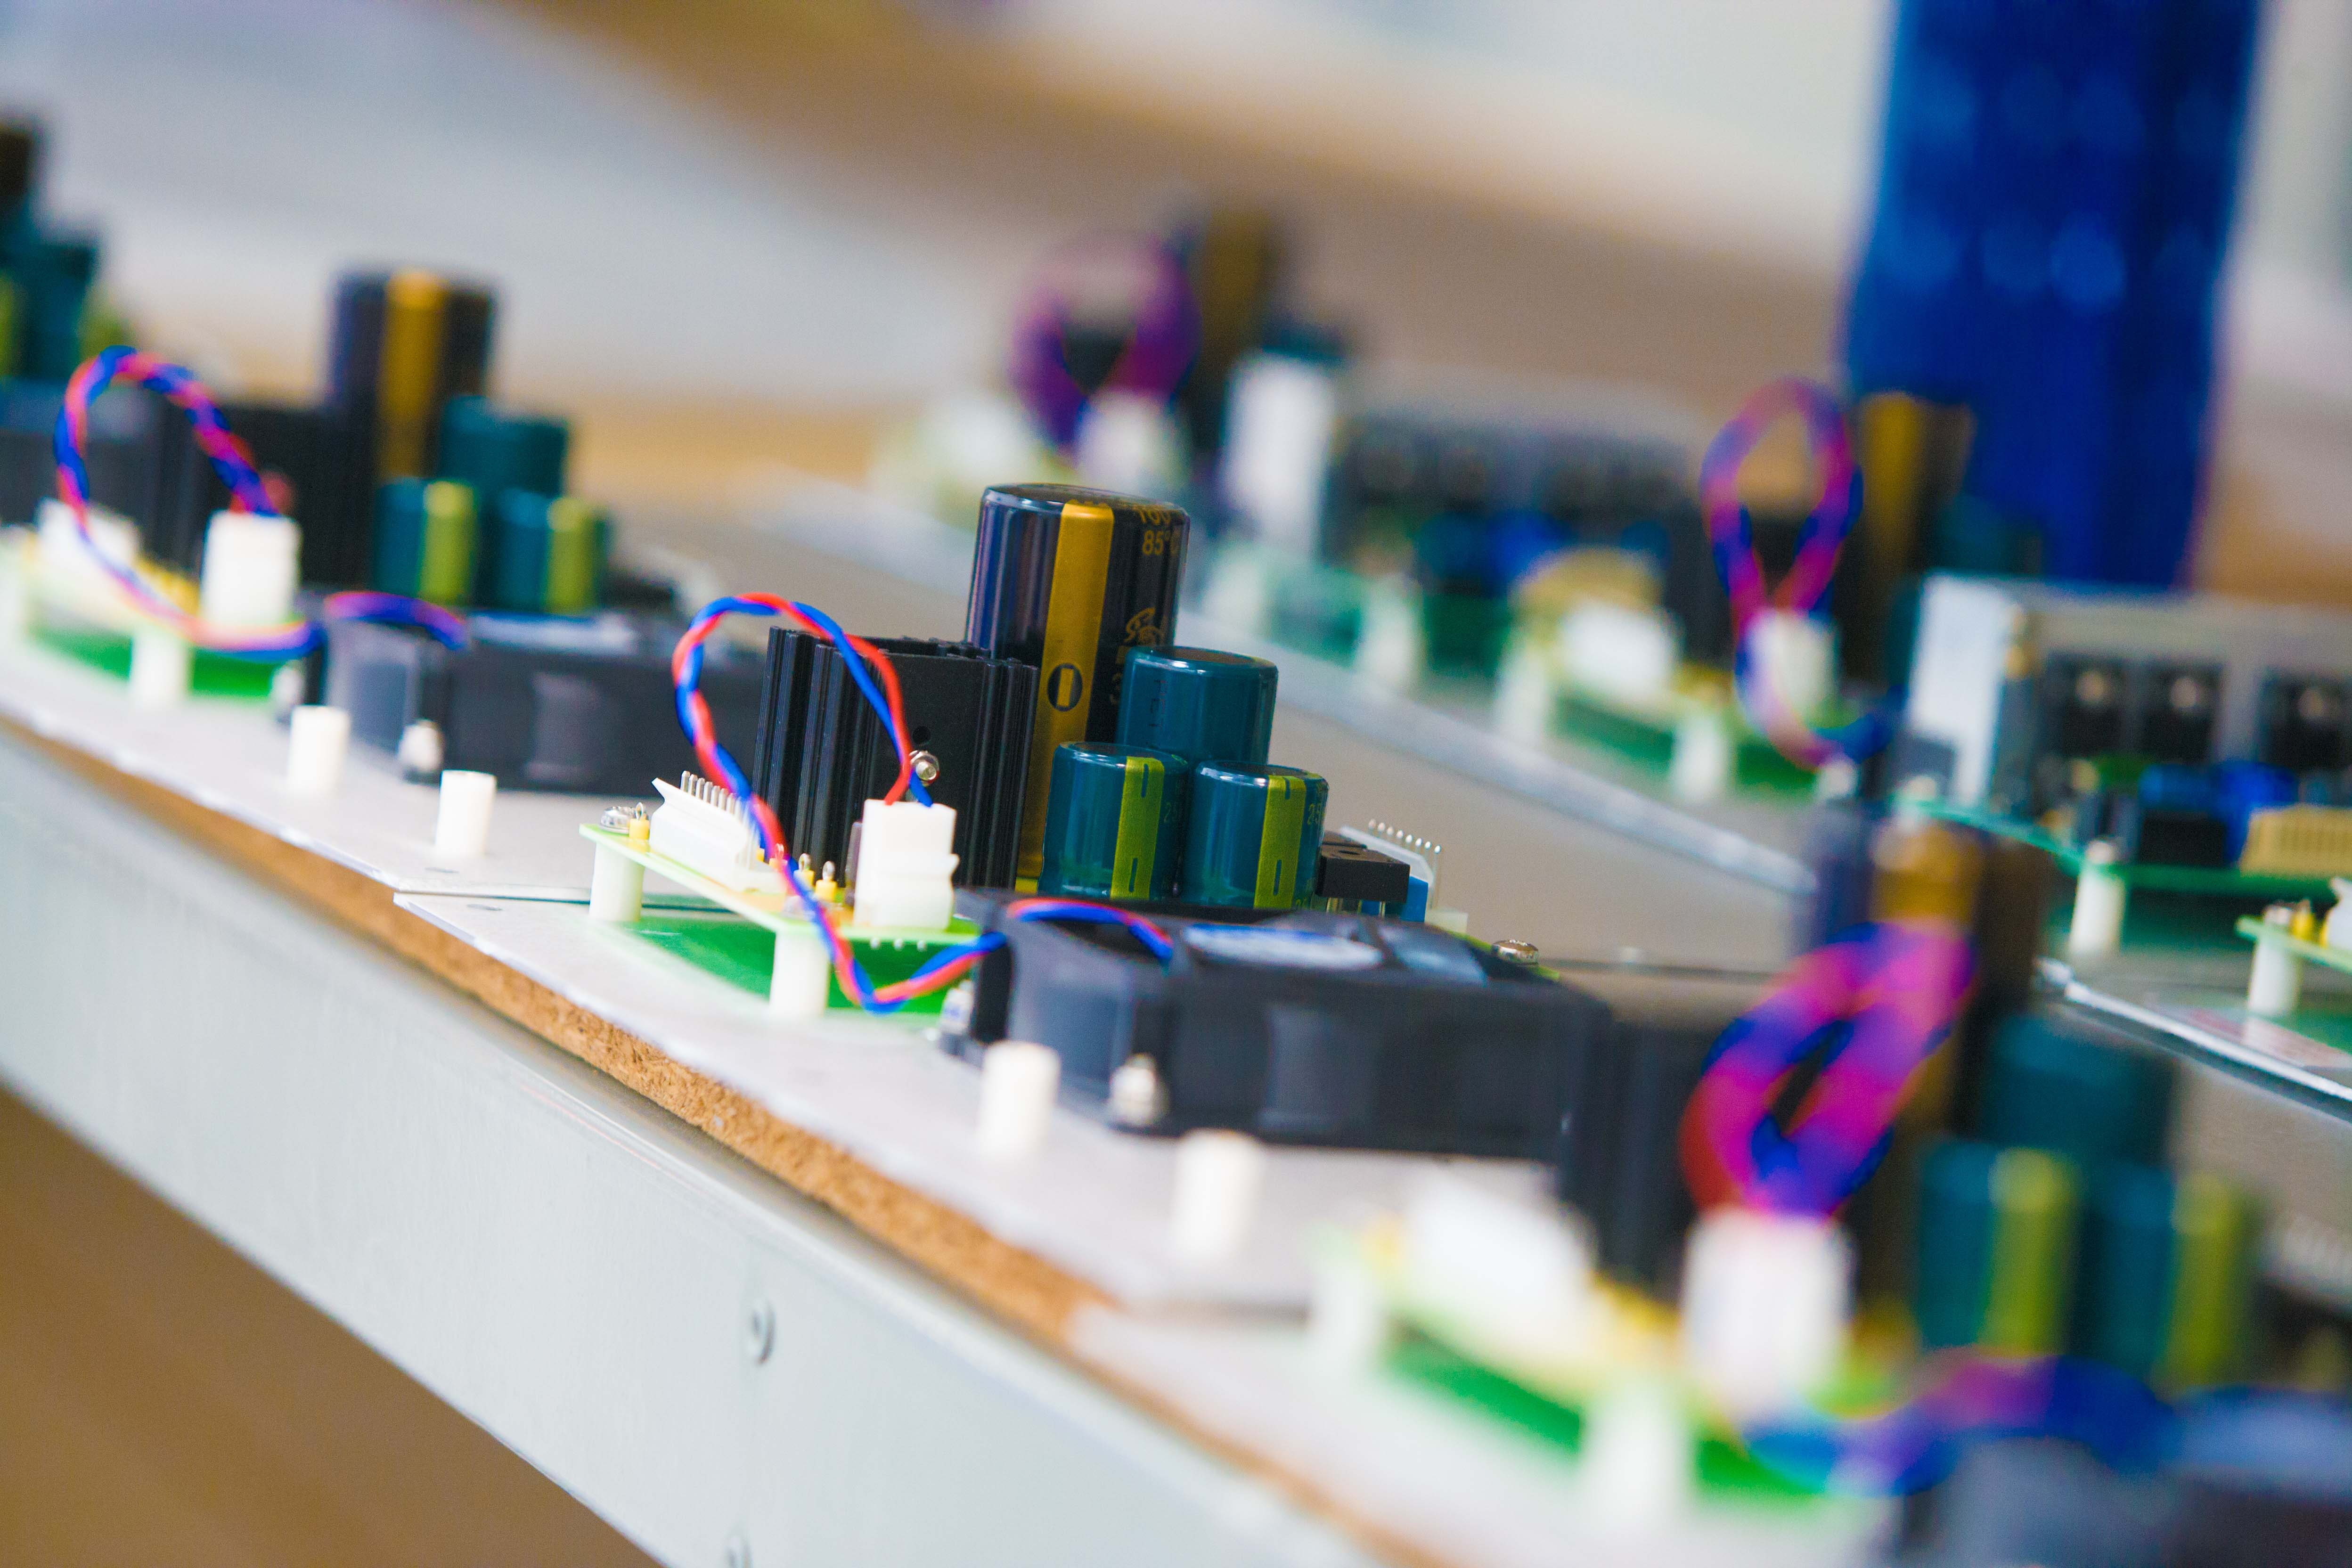 From the University of Bolton Electrical Engineering department, Electronics circuit board